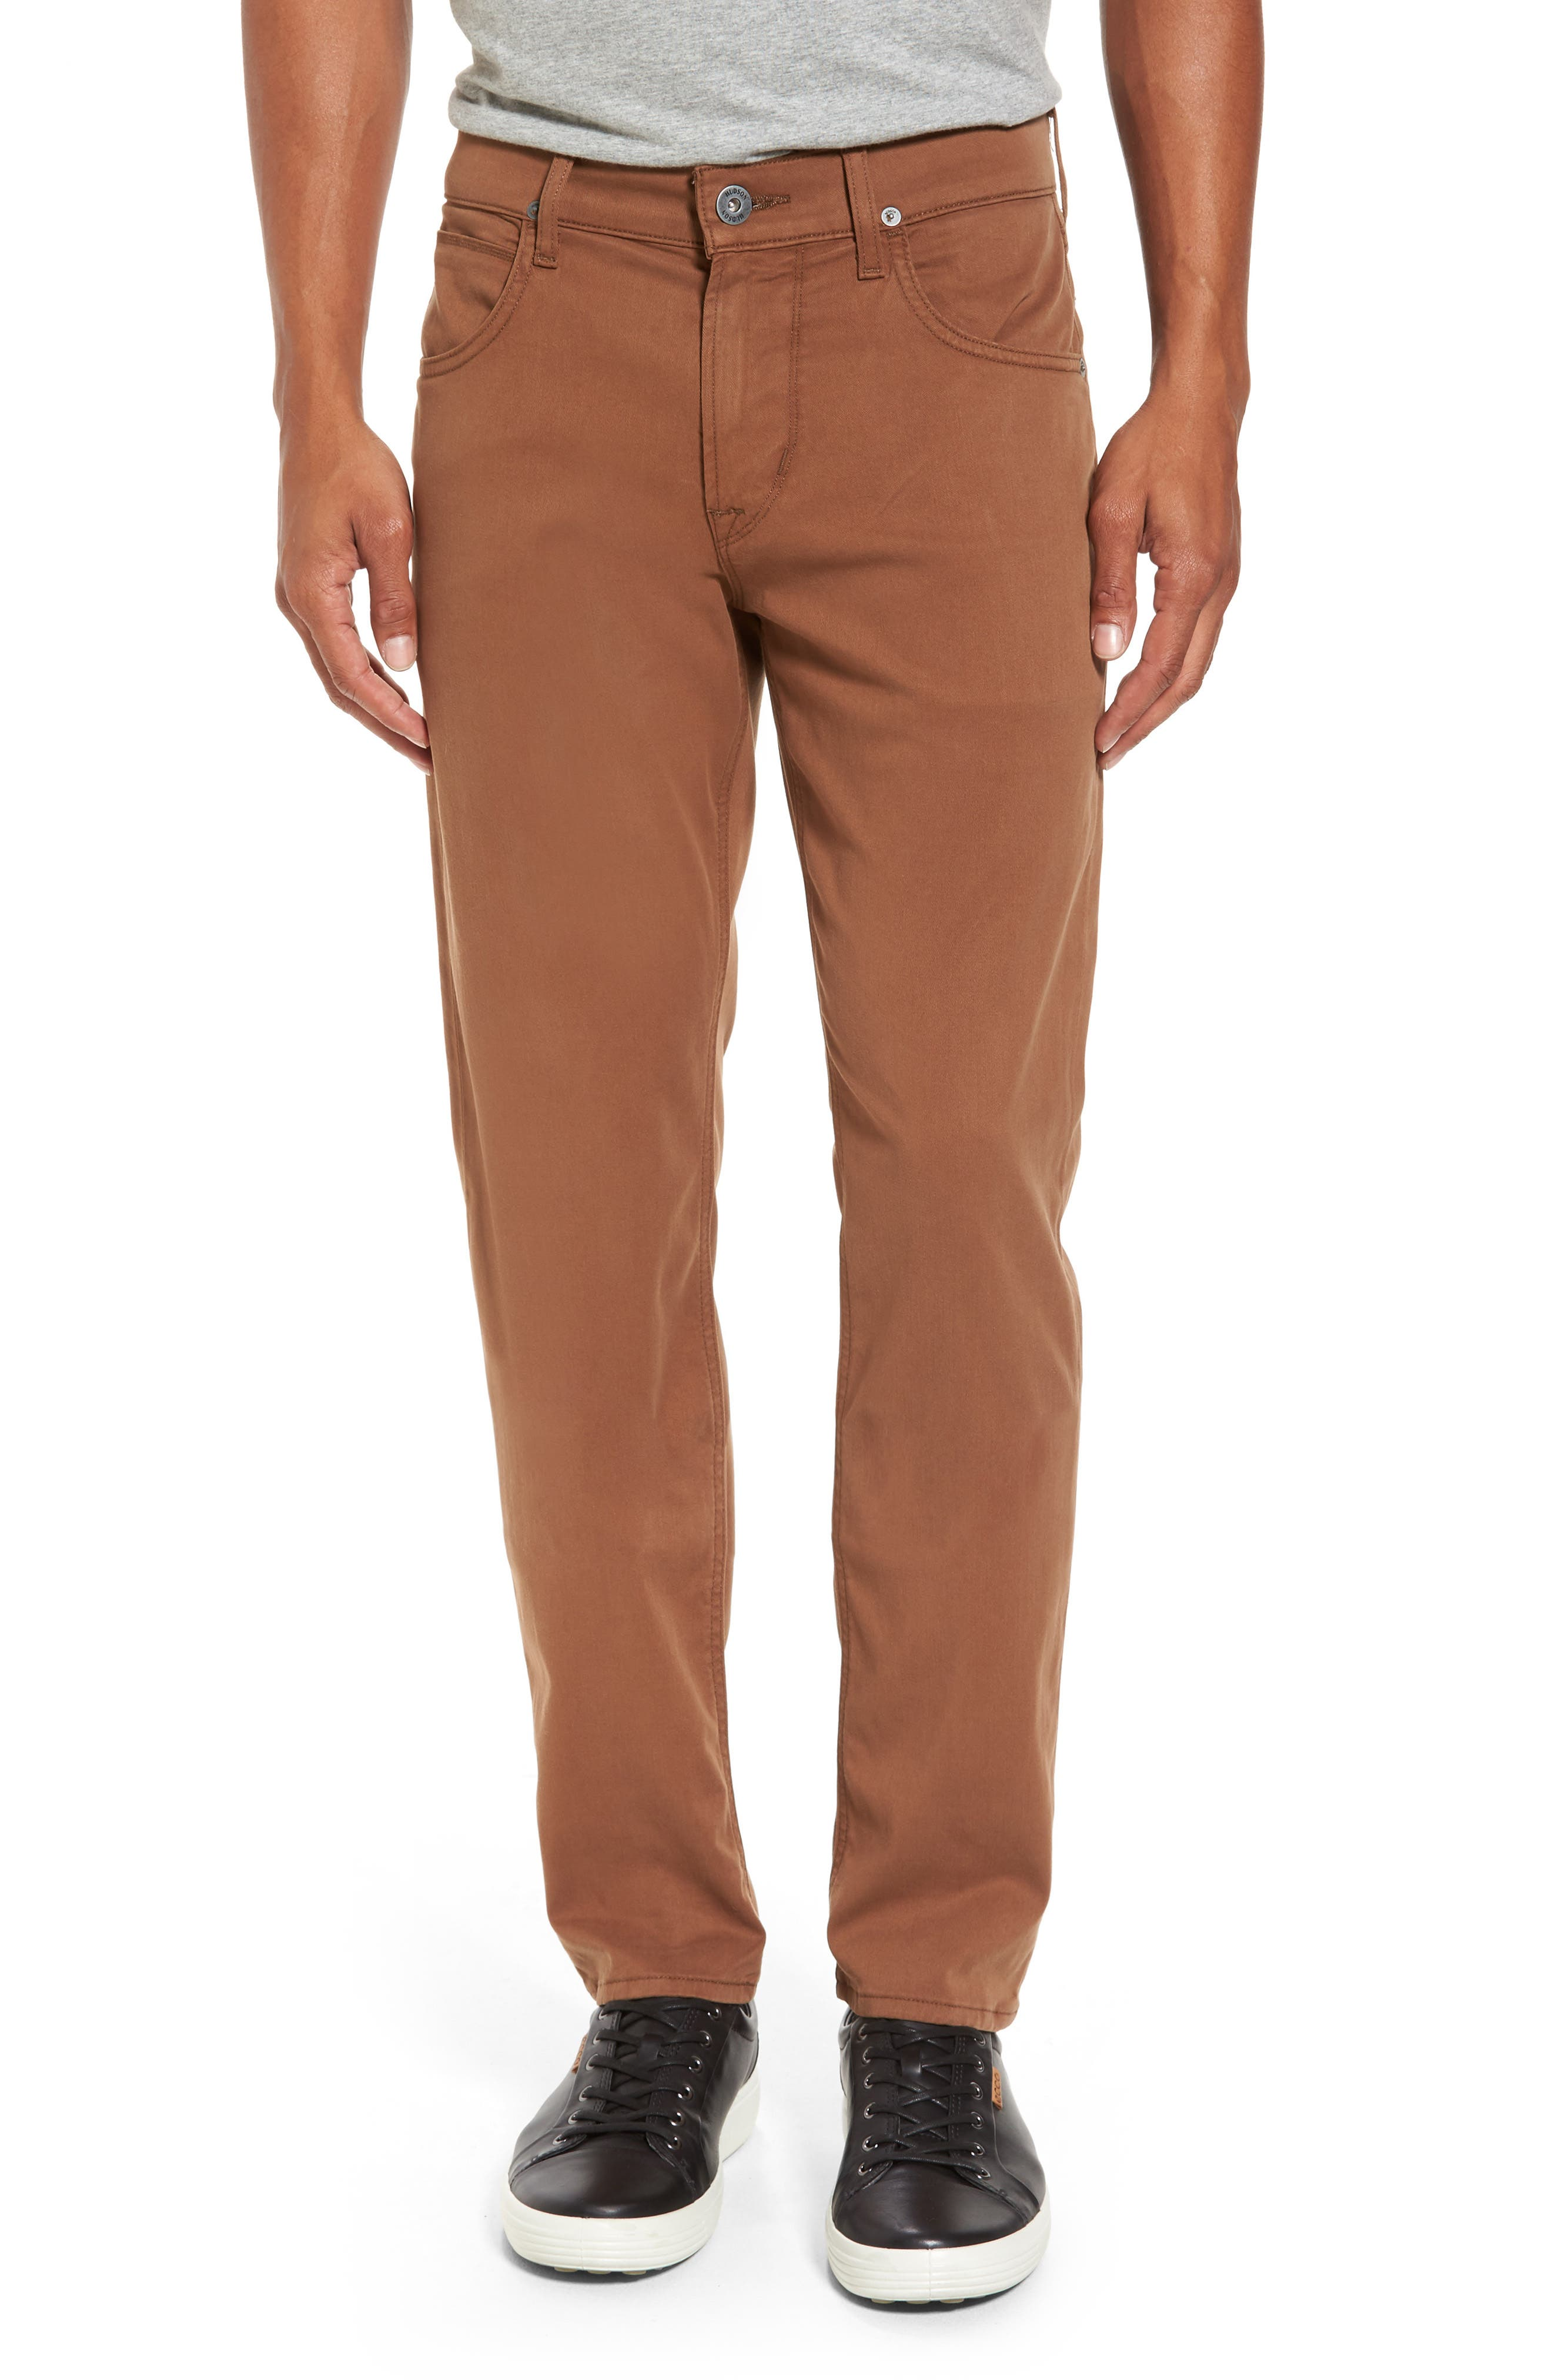 Men's Brown Jeans, Relaxed, Bootcut Fit & Selvedge Denim | Nordstrom